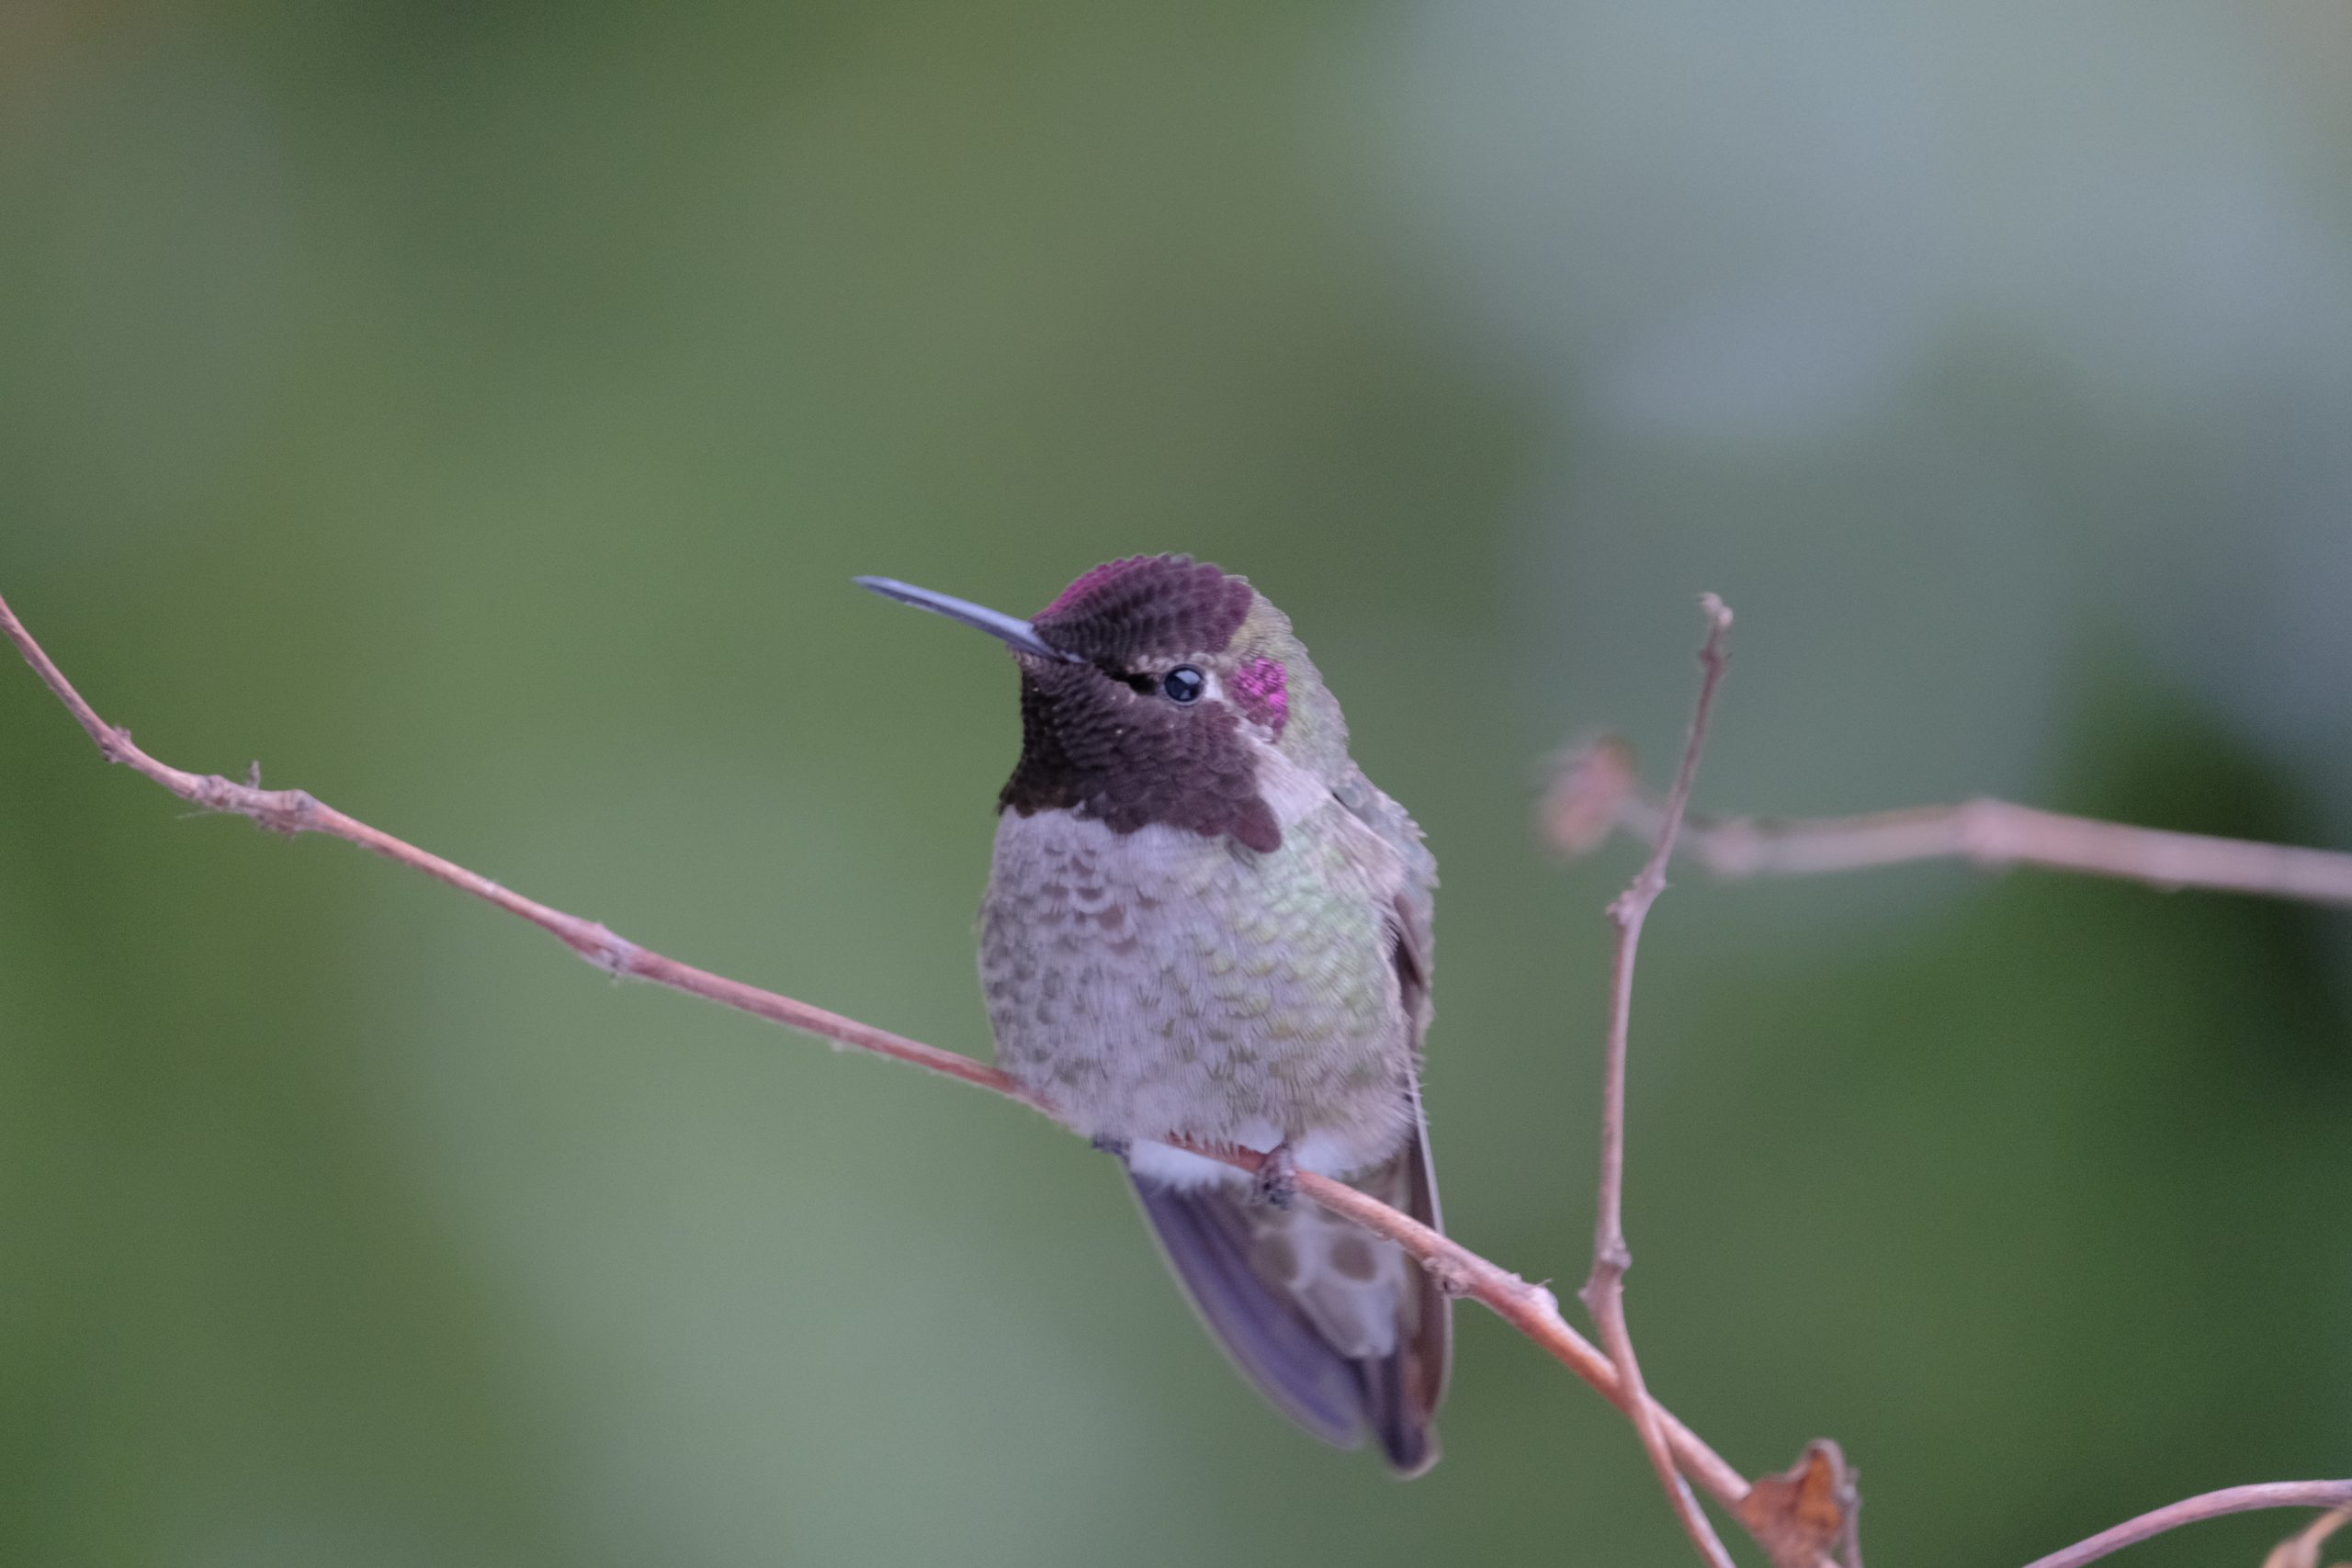 Hummingbird 13 Feb. 2021 Oregon Copyright Steve J Davis